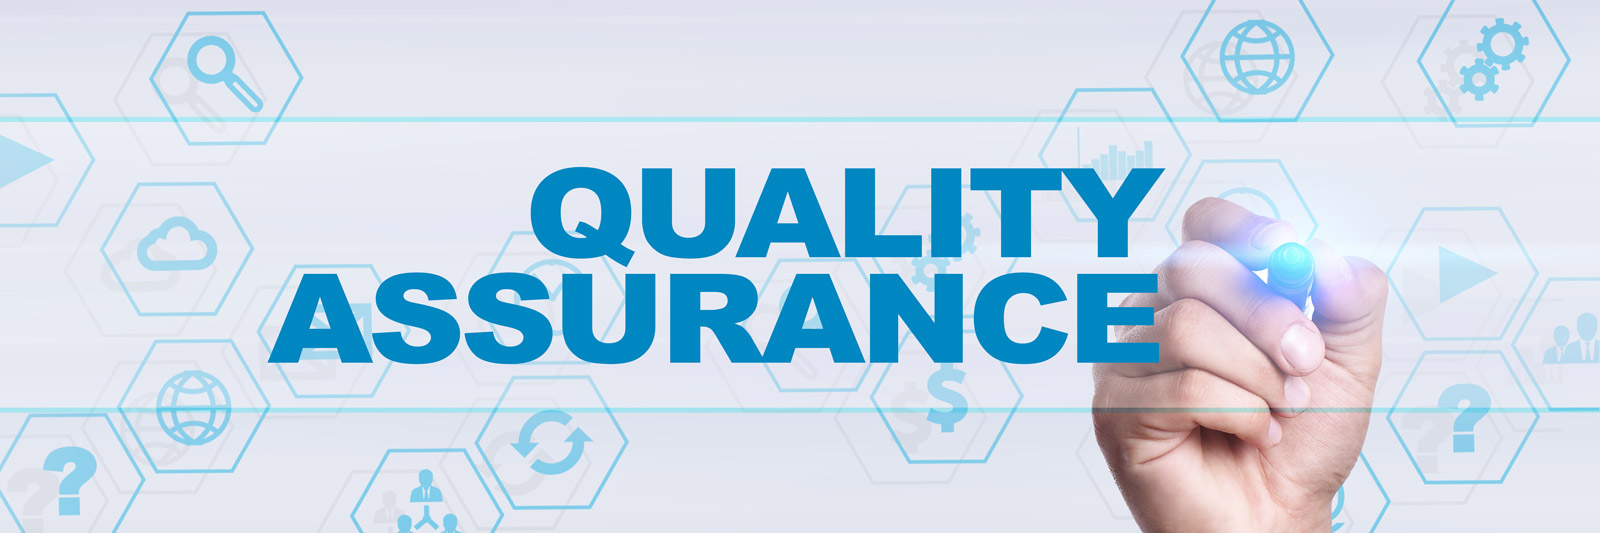 the word quality assurance in text